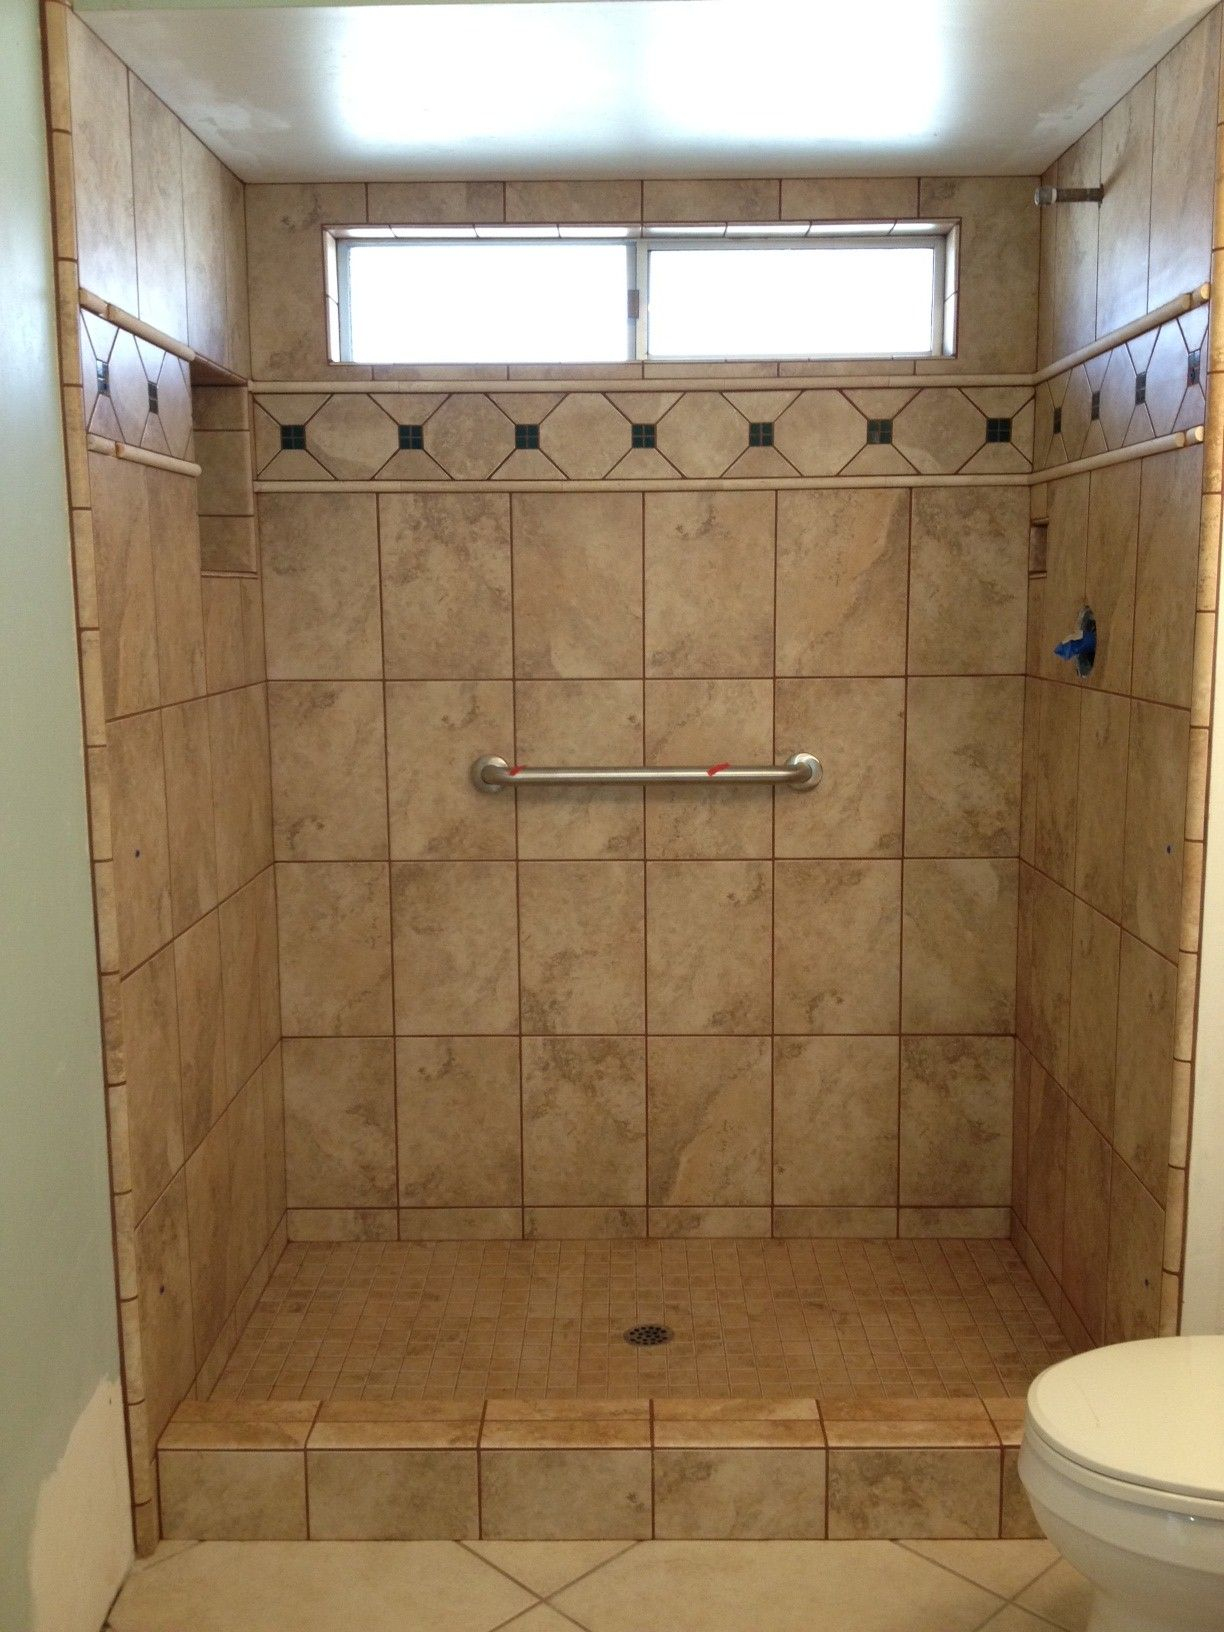 Photos Of Tiled Shower Stalls Gallery Custom Tile Work Co Ceramic Natural Stone Tiles